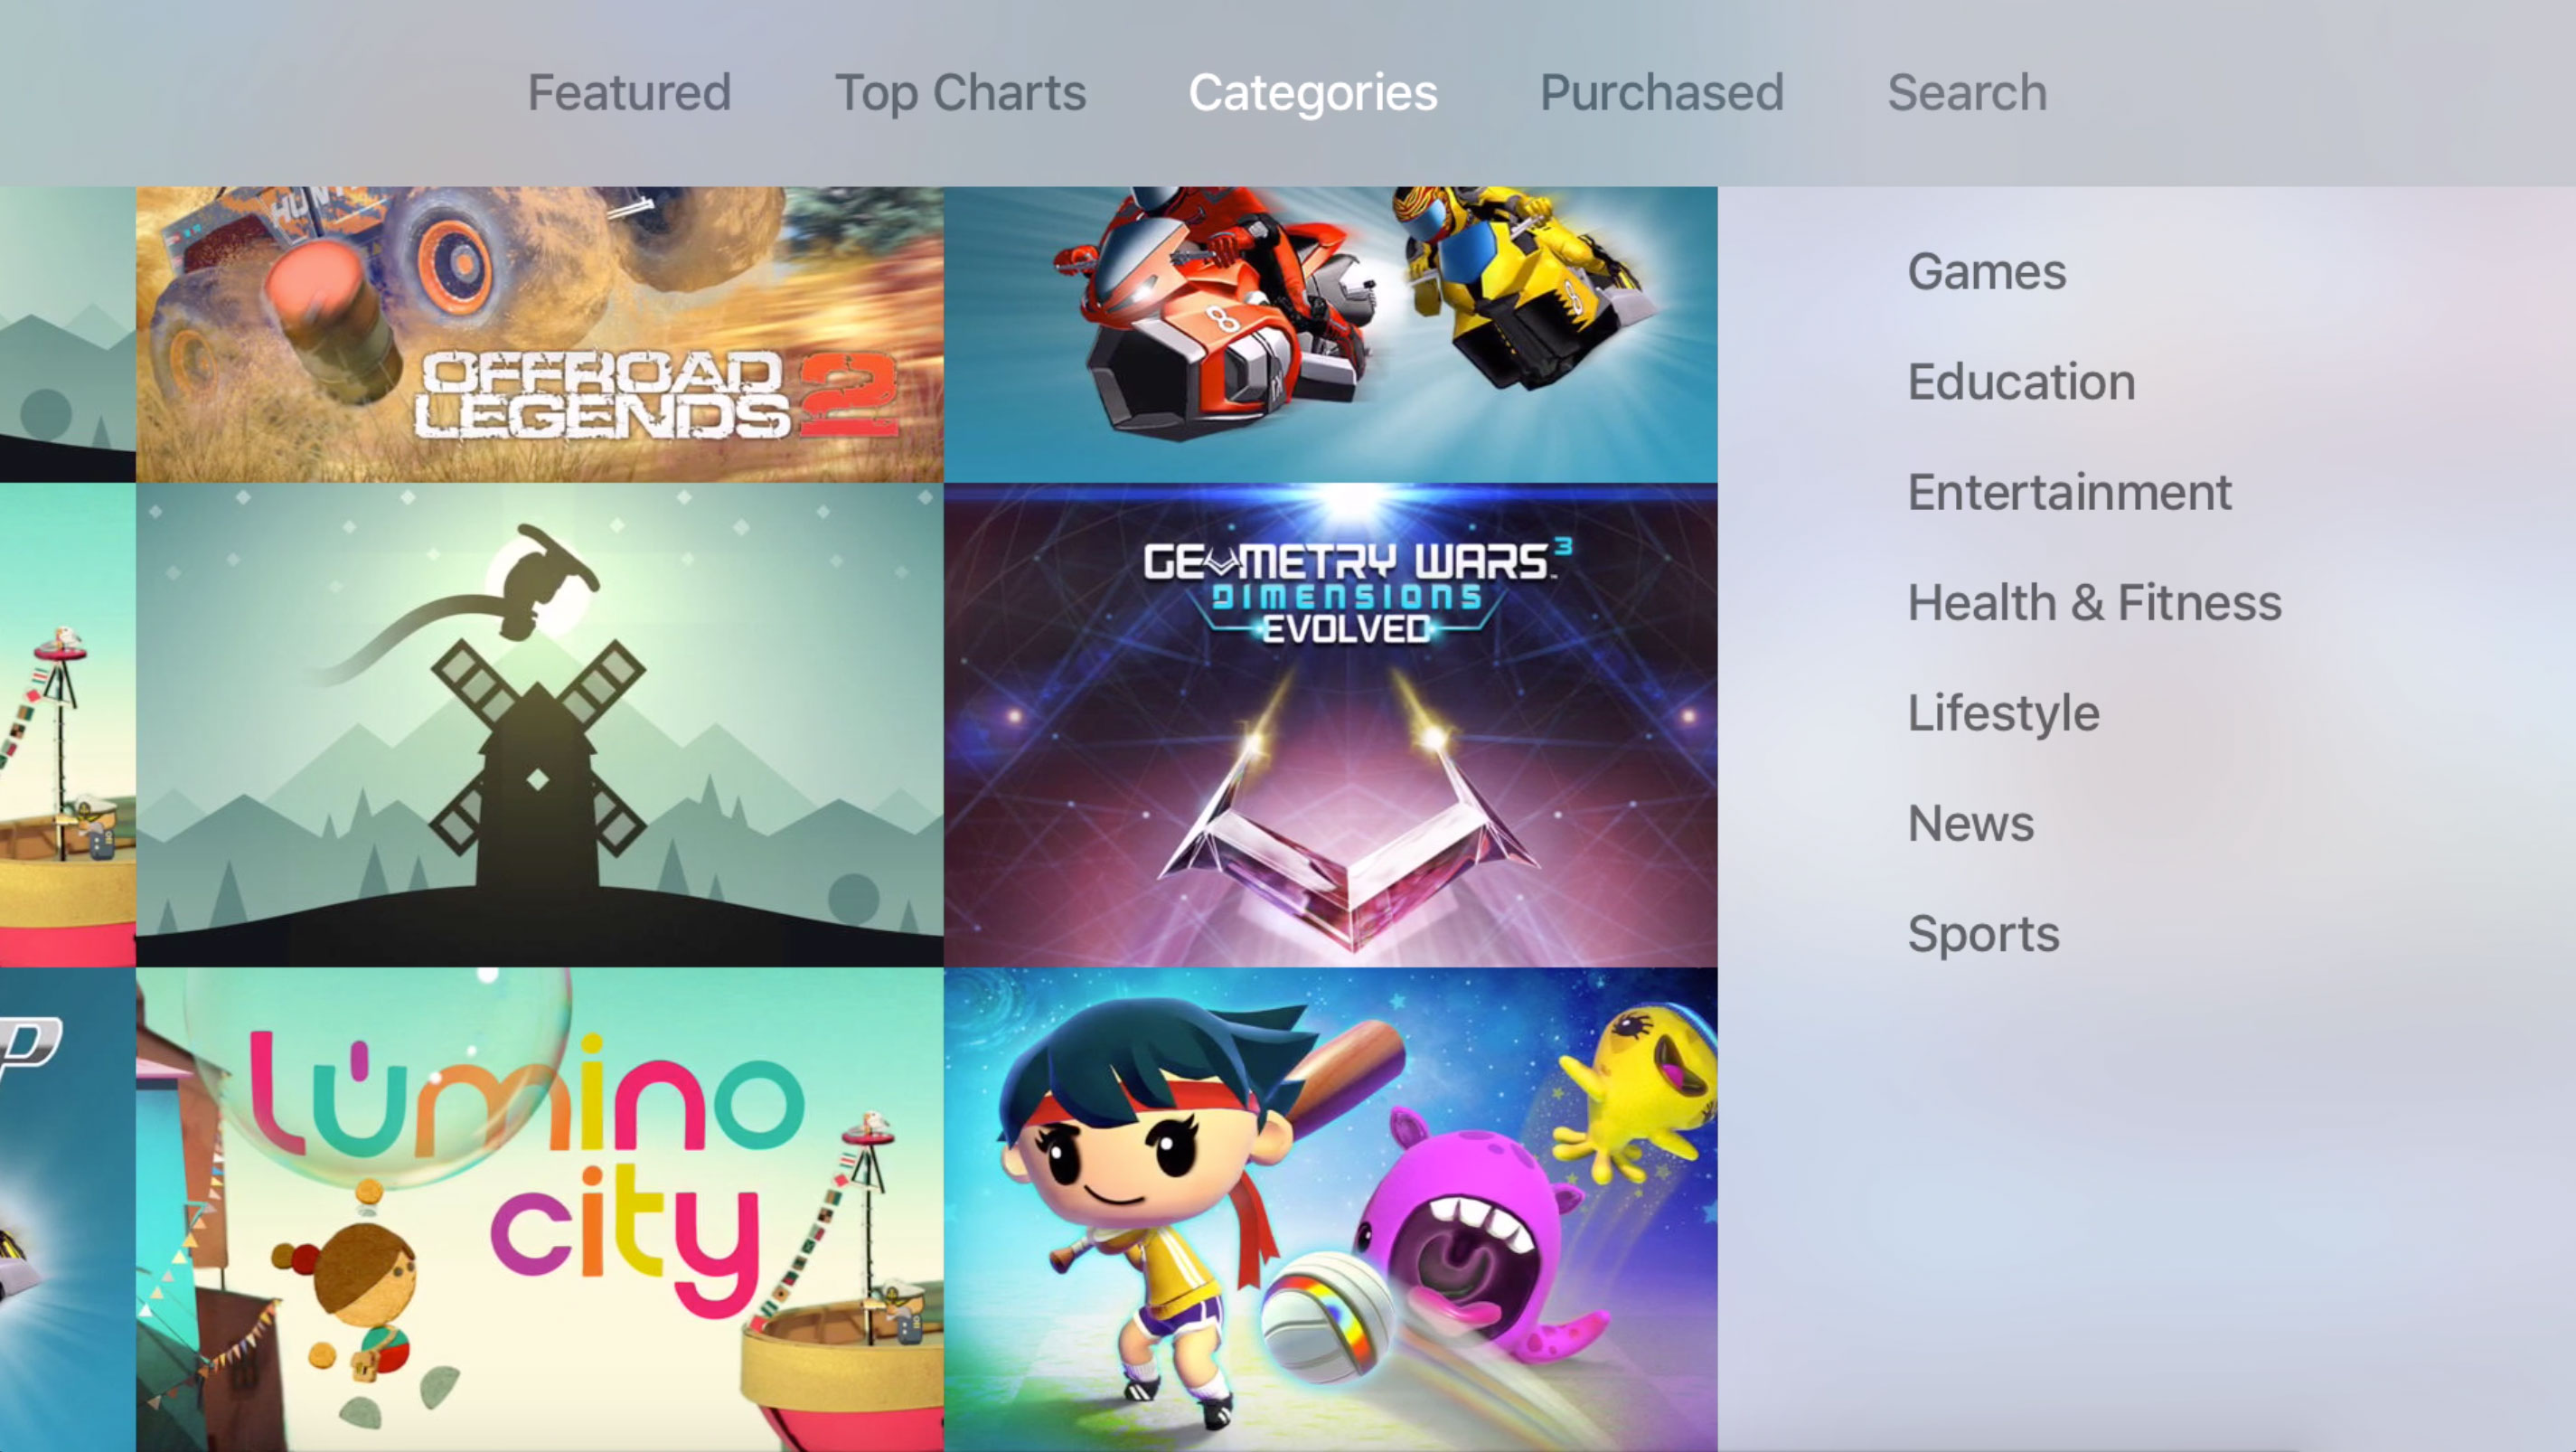 The Apple TV's App Store now features seven different categories